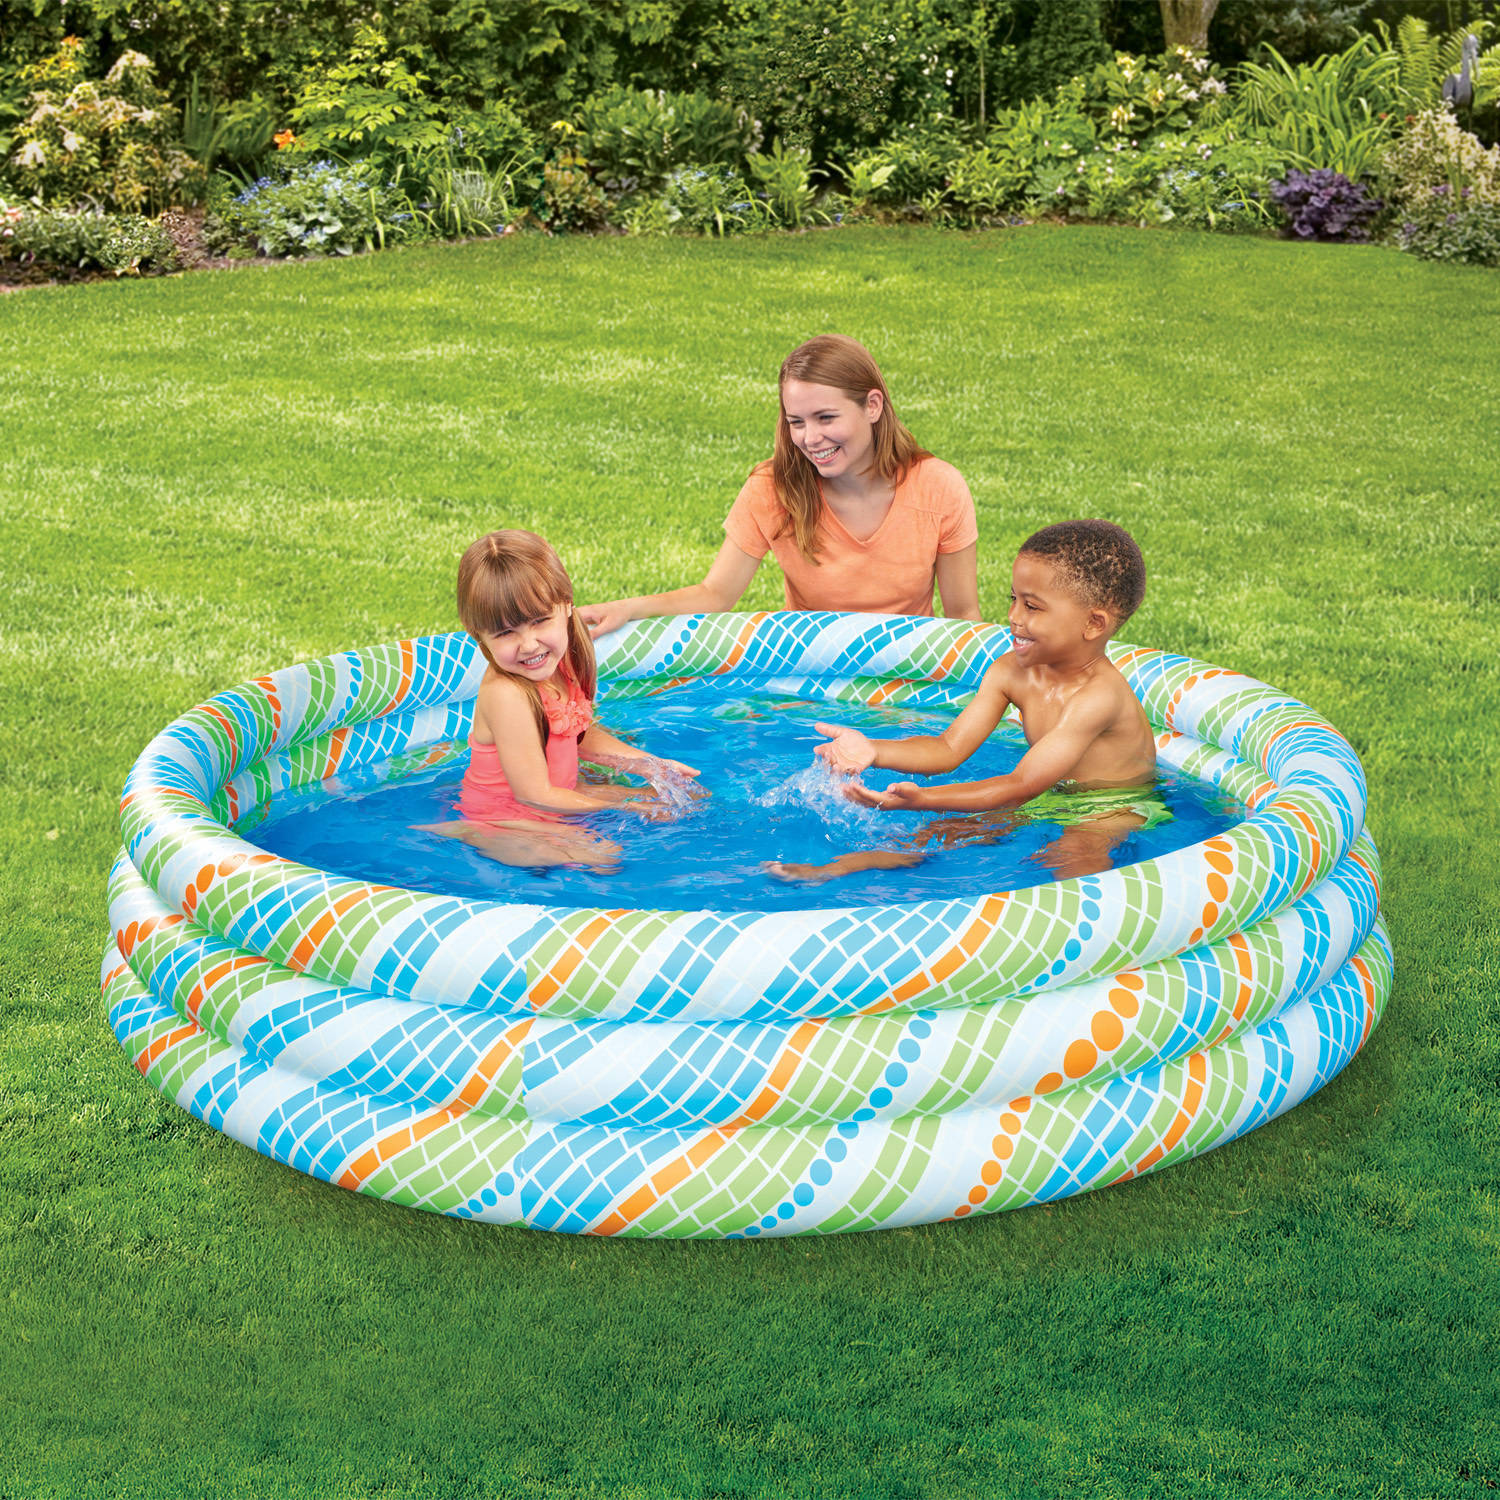 Elegant 3 Ring Inflatable Pool